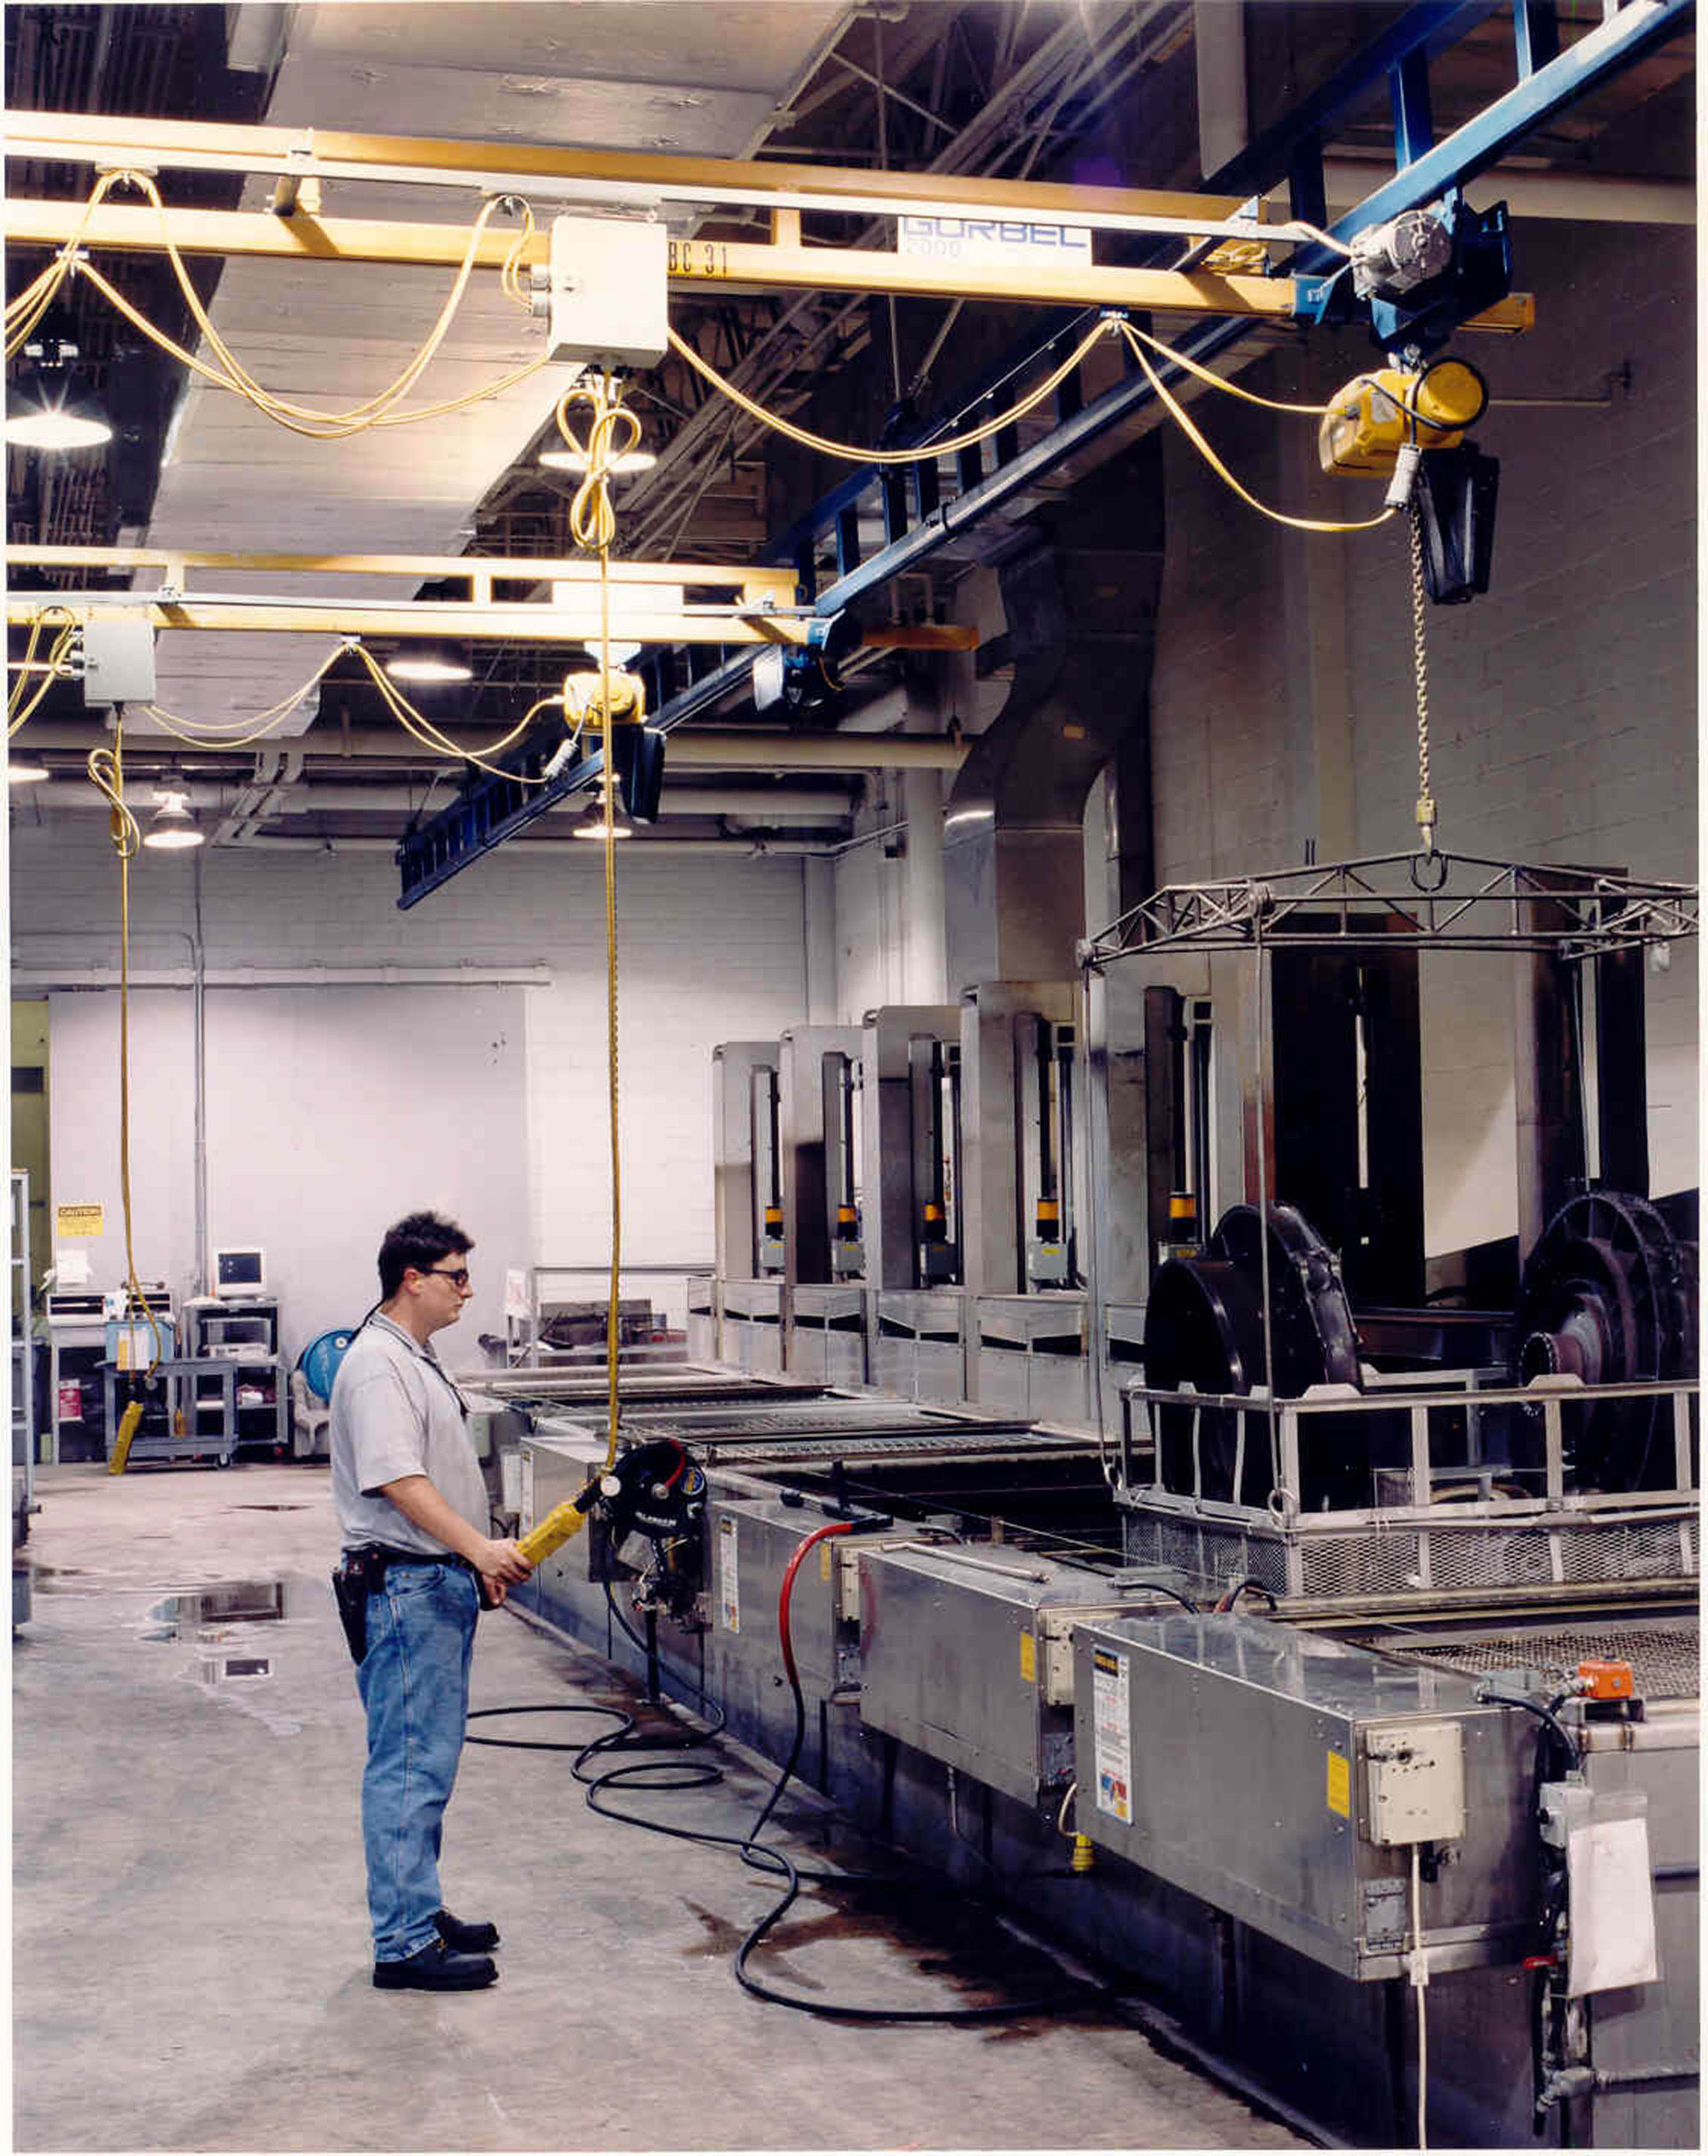 Ergonomic Assist Systems And Equipment Photos For Performing Frequent Hoist Control Suspended From Overhead Crane Enclosed Track Workstation Cranes Are Ergonomically Designed Lighter Loads 150 Lbs To 4000 Capacities Horizontal Movement Is Usually Push